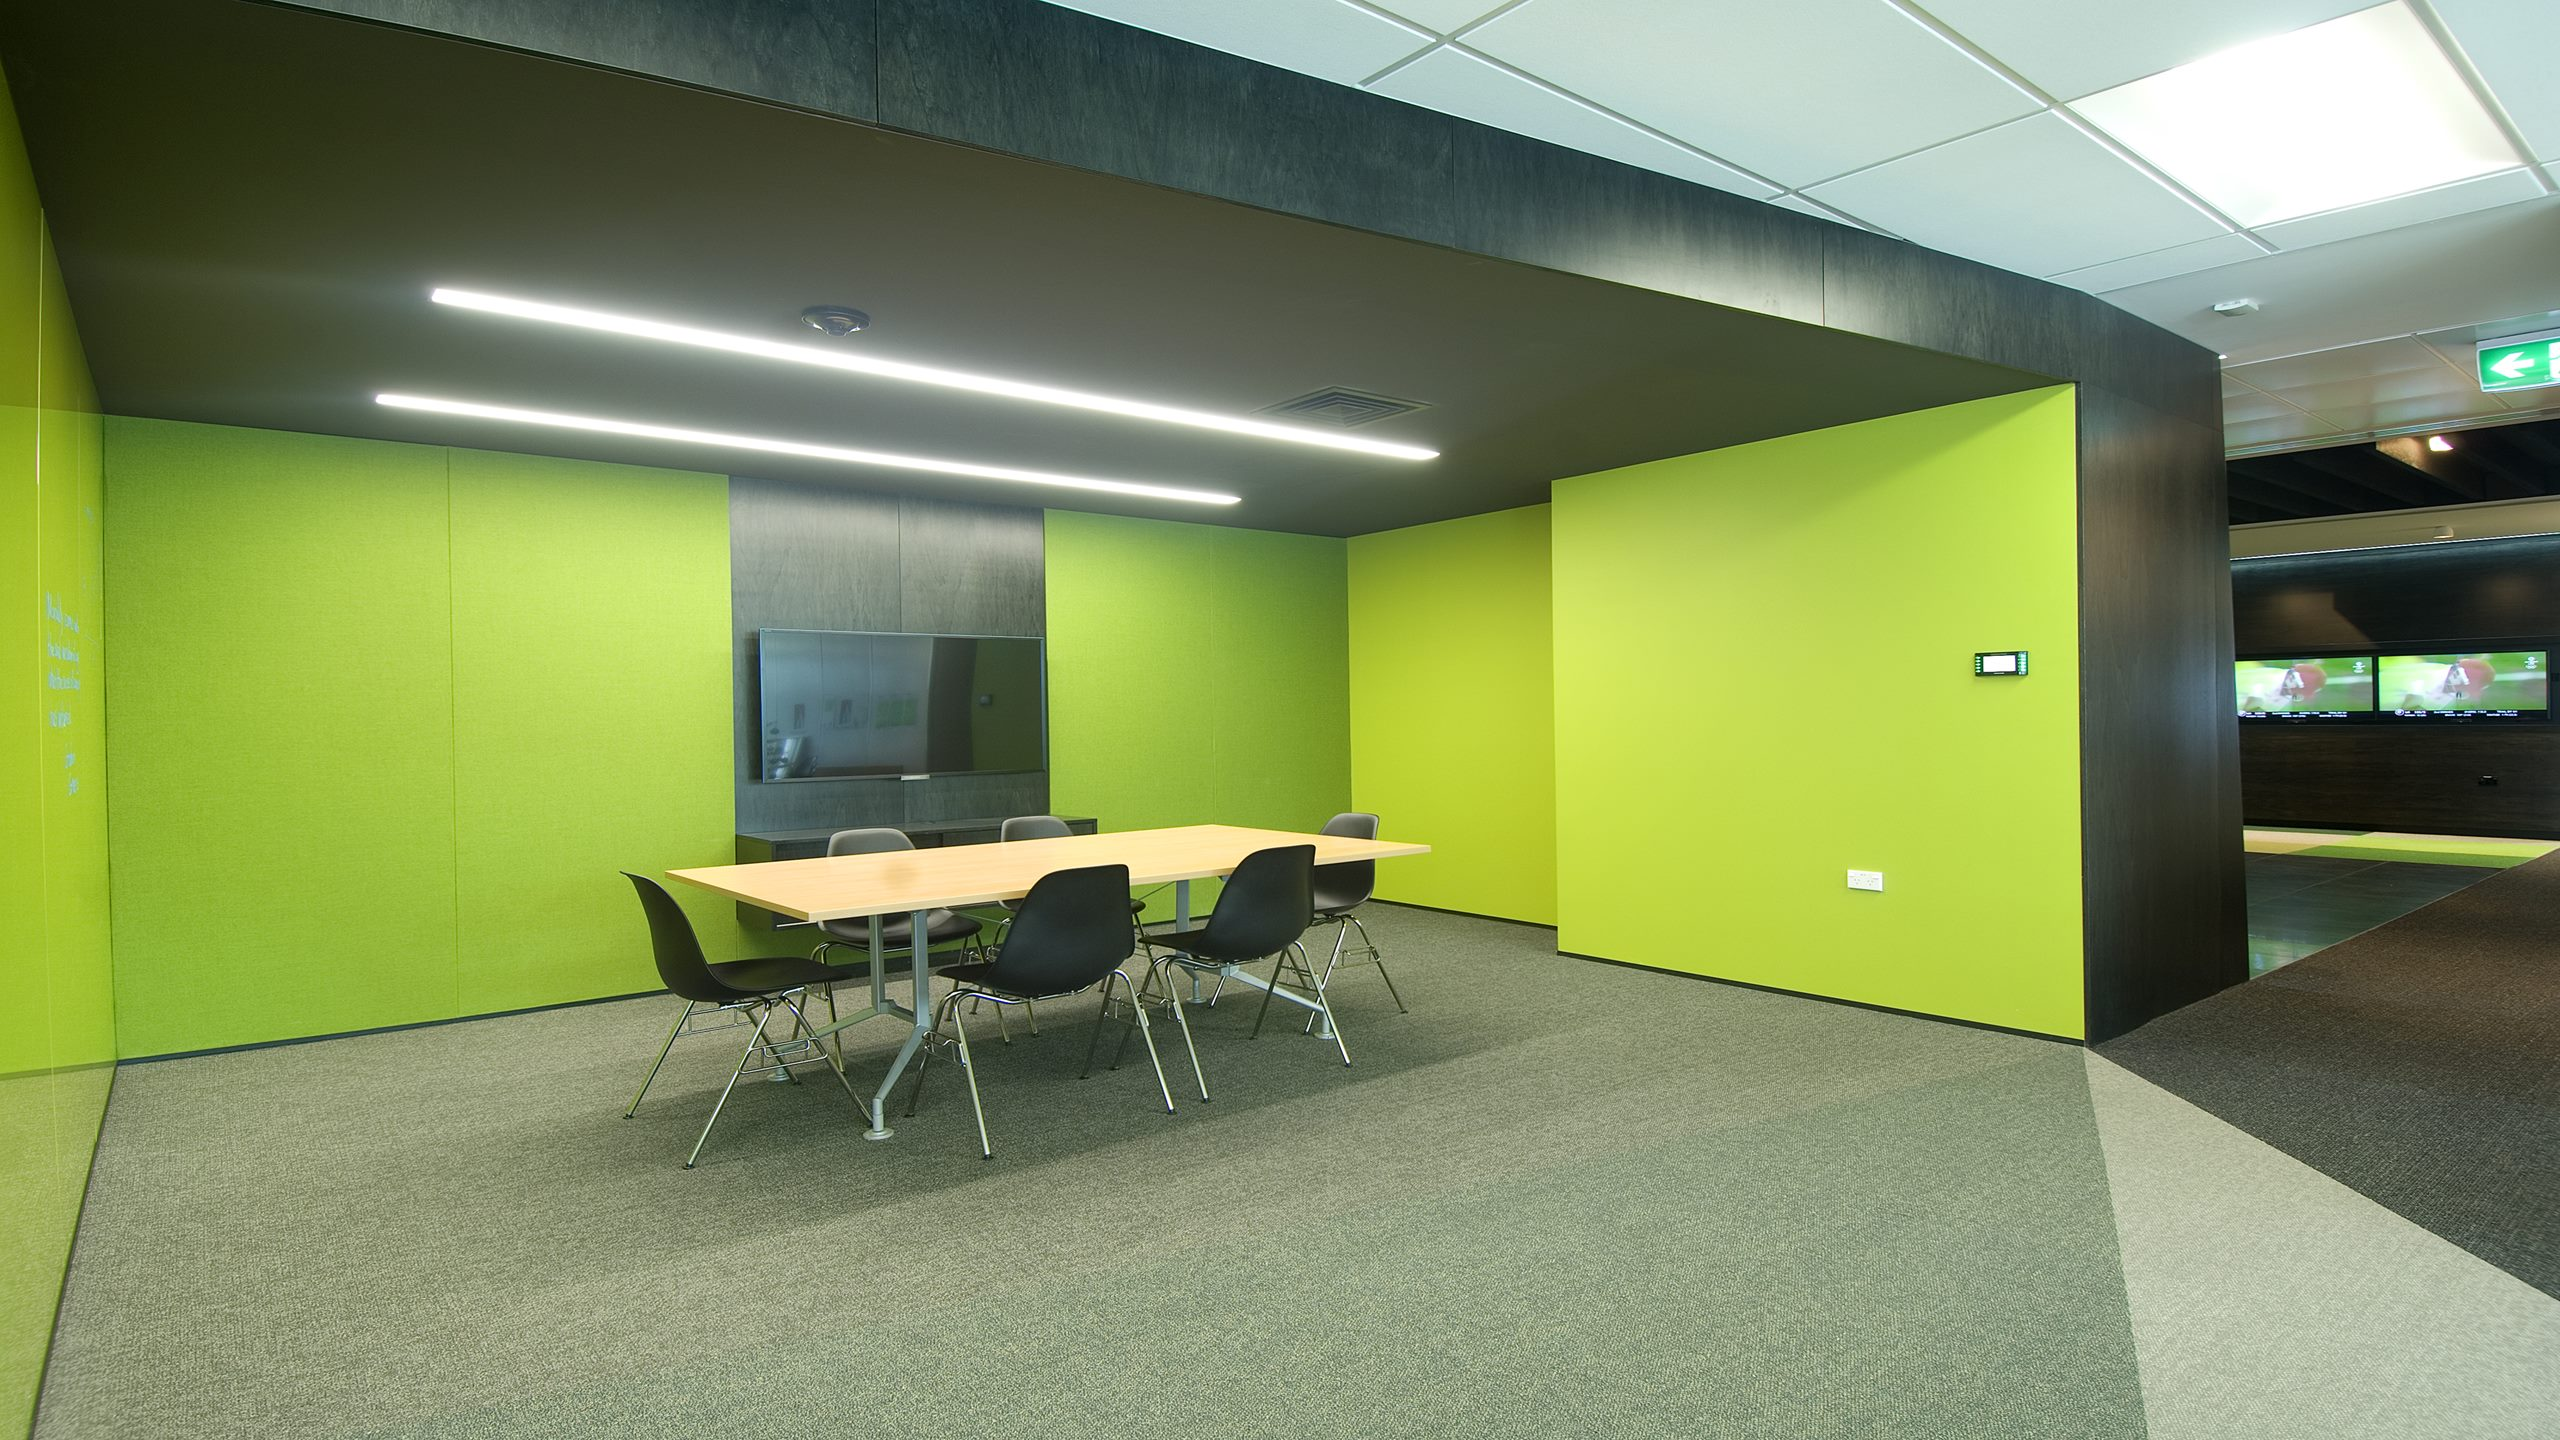 Premier Pinboard in green fabric installed in an open plan meeting area.